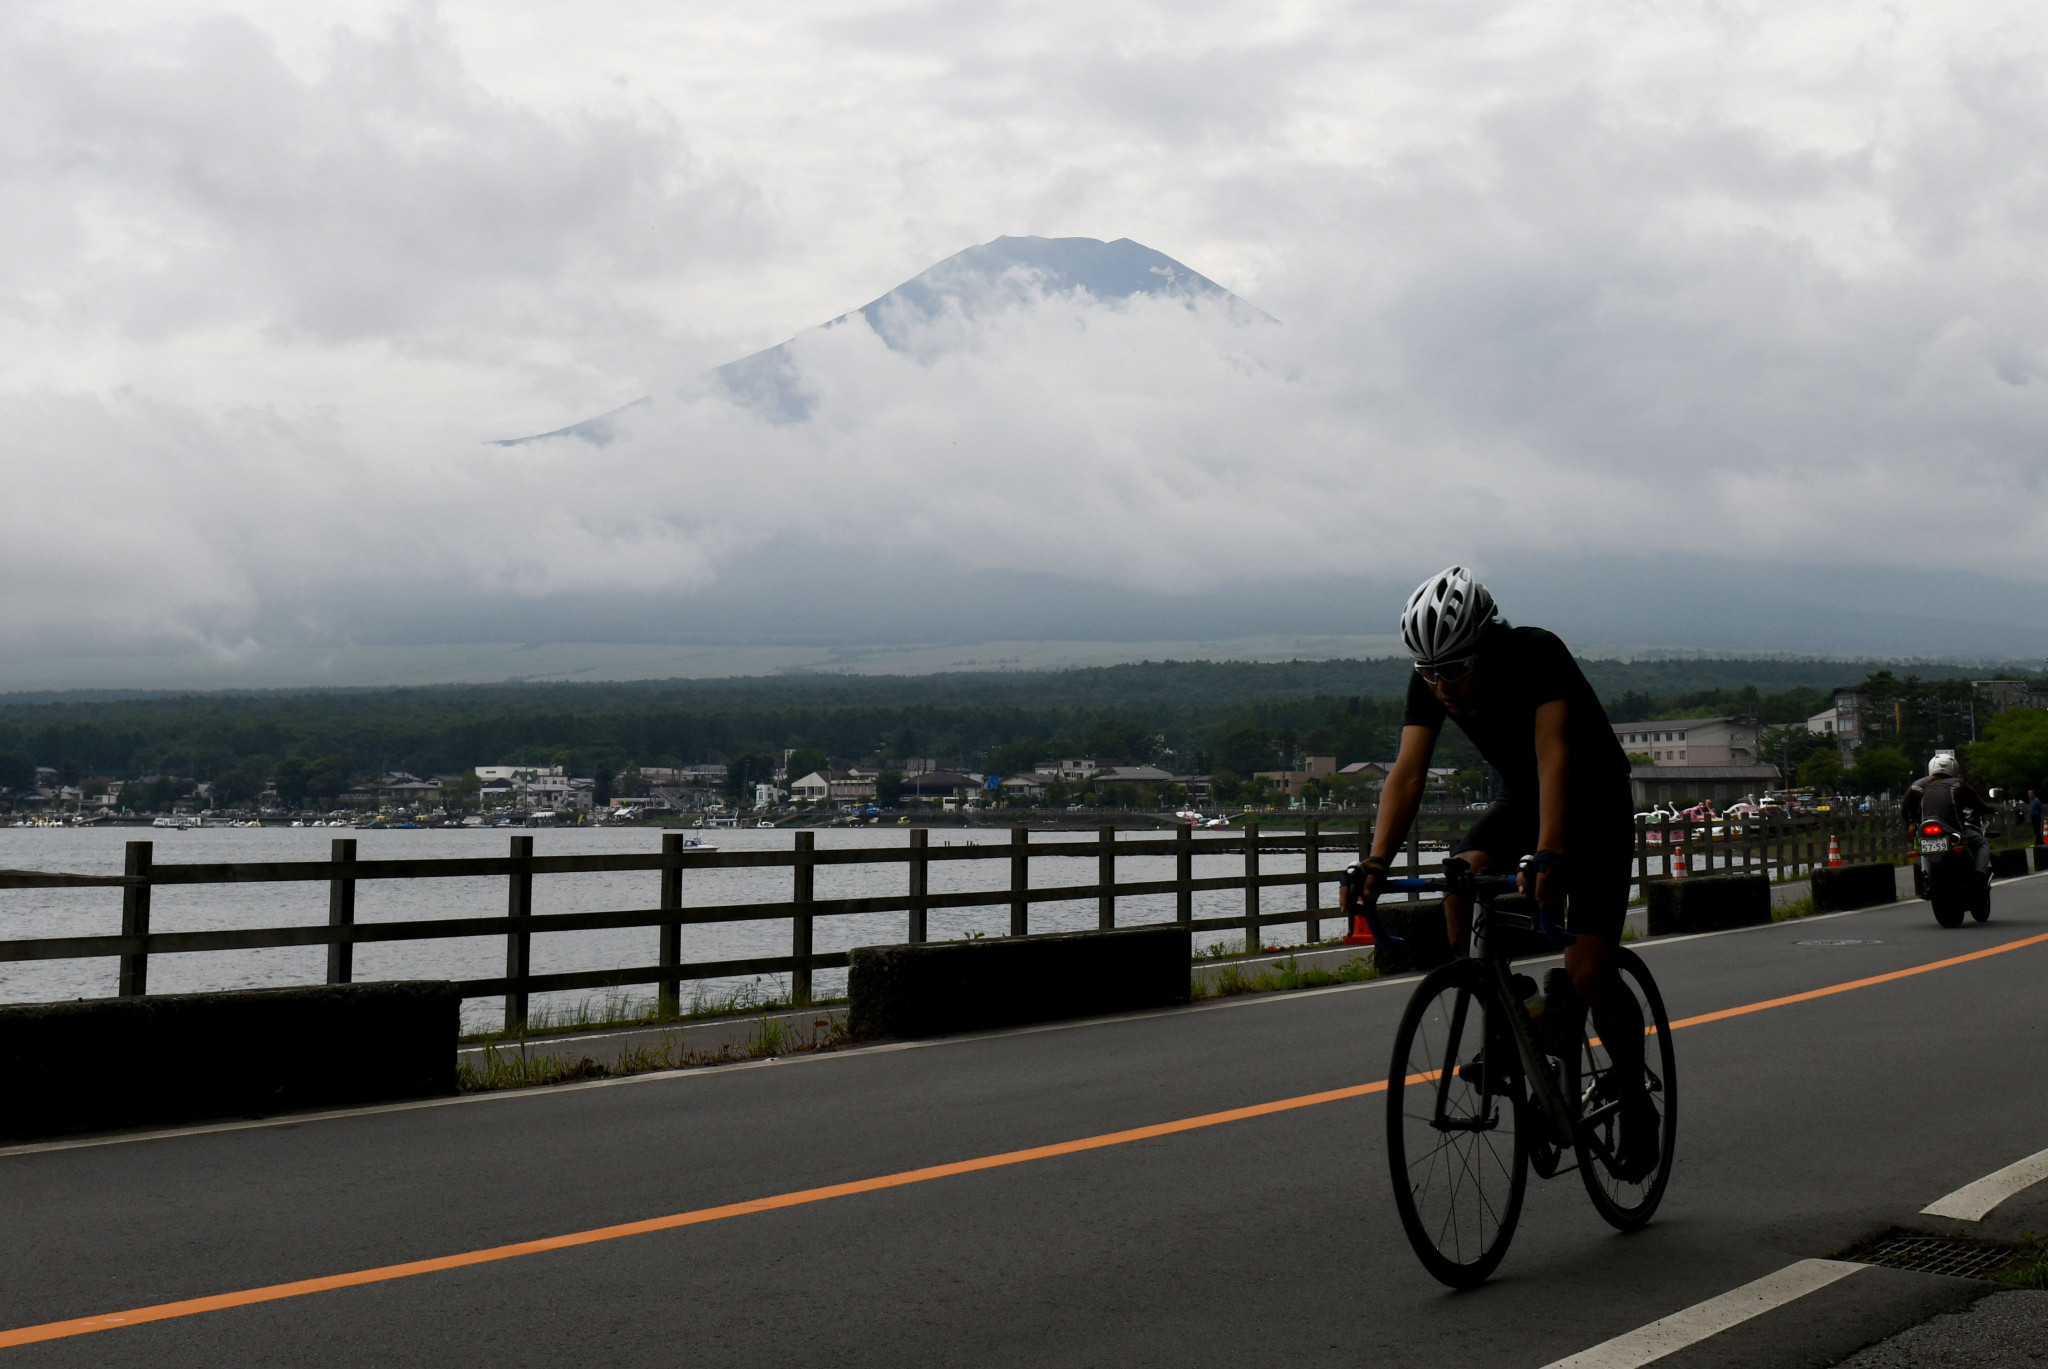 The hilly route could dissuade sprinters from contesting the men's road race at tokyo 2020 ©Getty Images